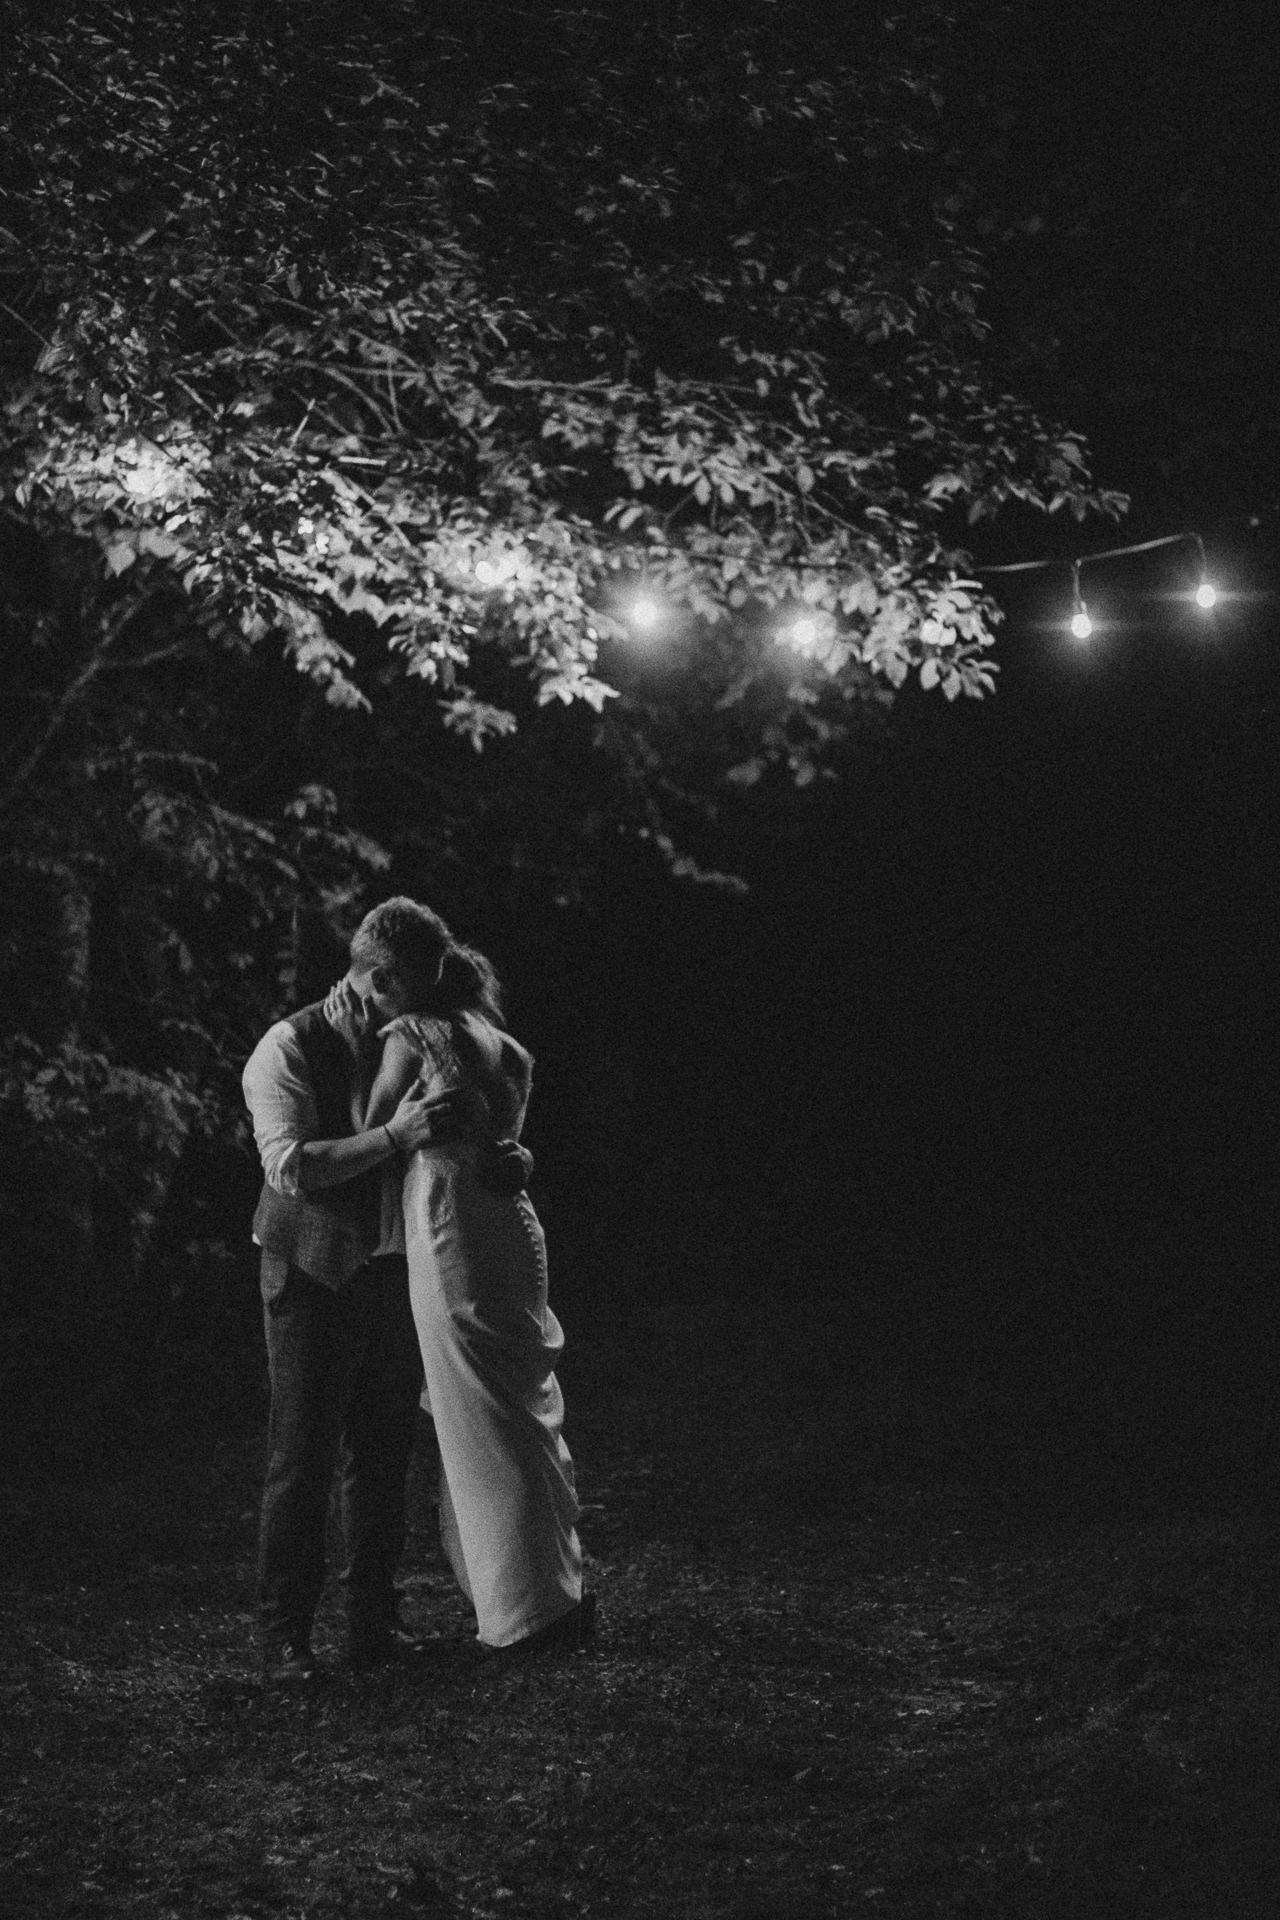 0080-DEVON-SOMERSET-WEDDING-PHOTOGRAPHER-0336-BEST-OF-2019-LOUISE-MAY-DEVON-SOMERSET-WEDDING-PHOTOGRAPHY-LM3_0184